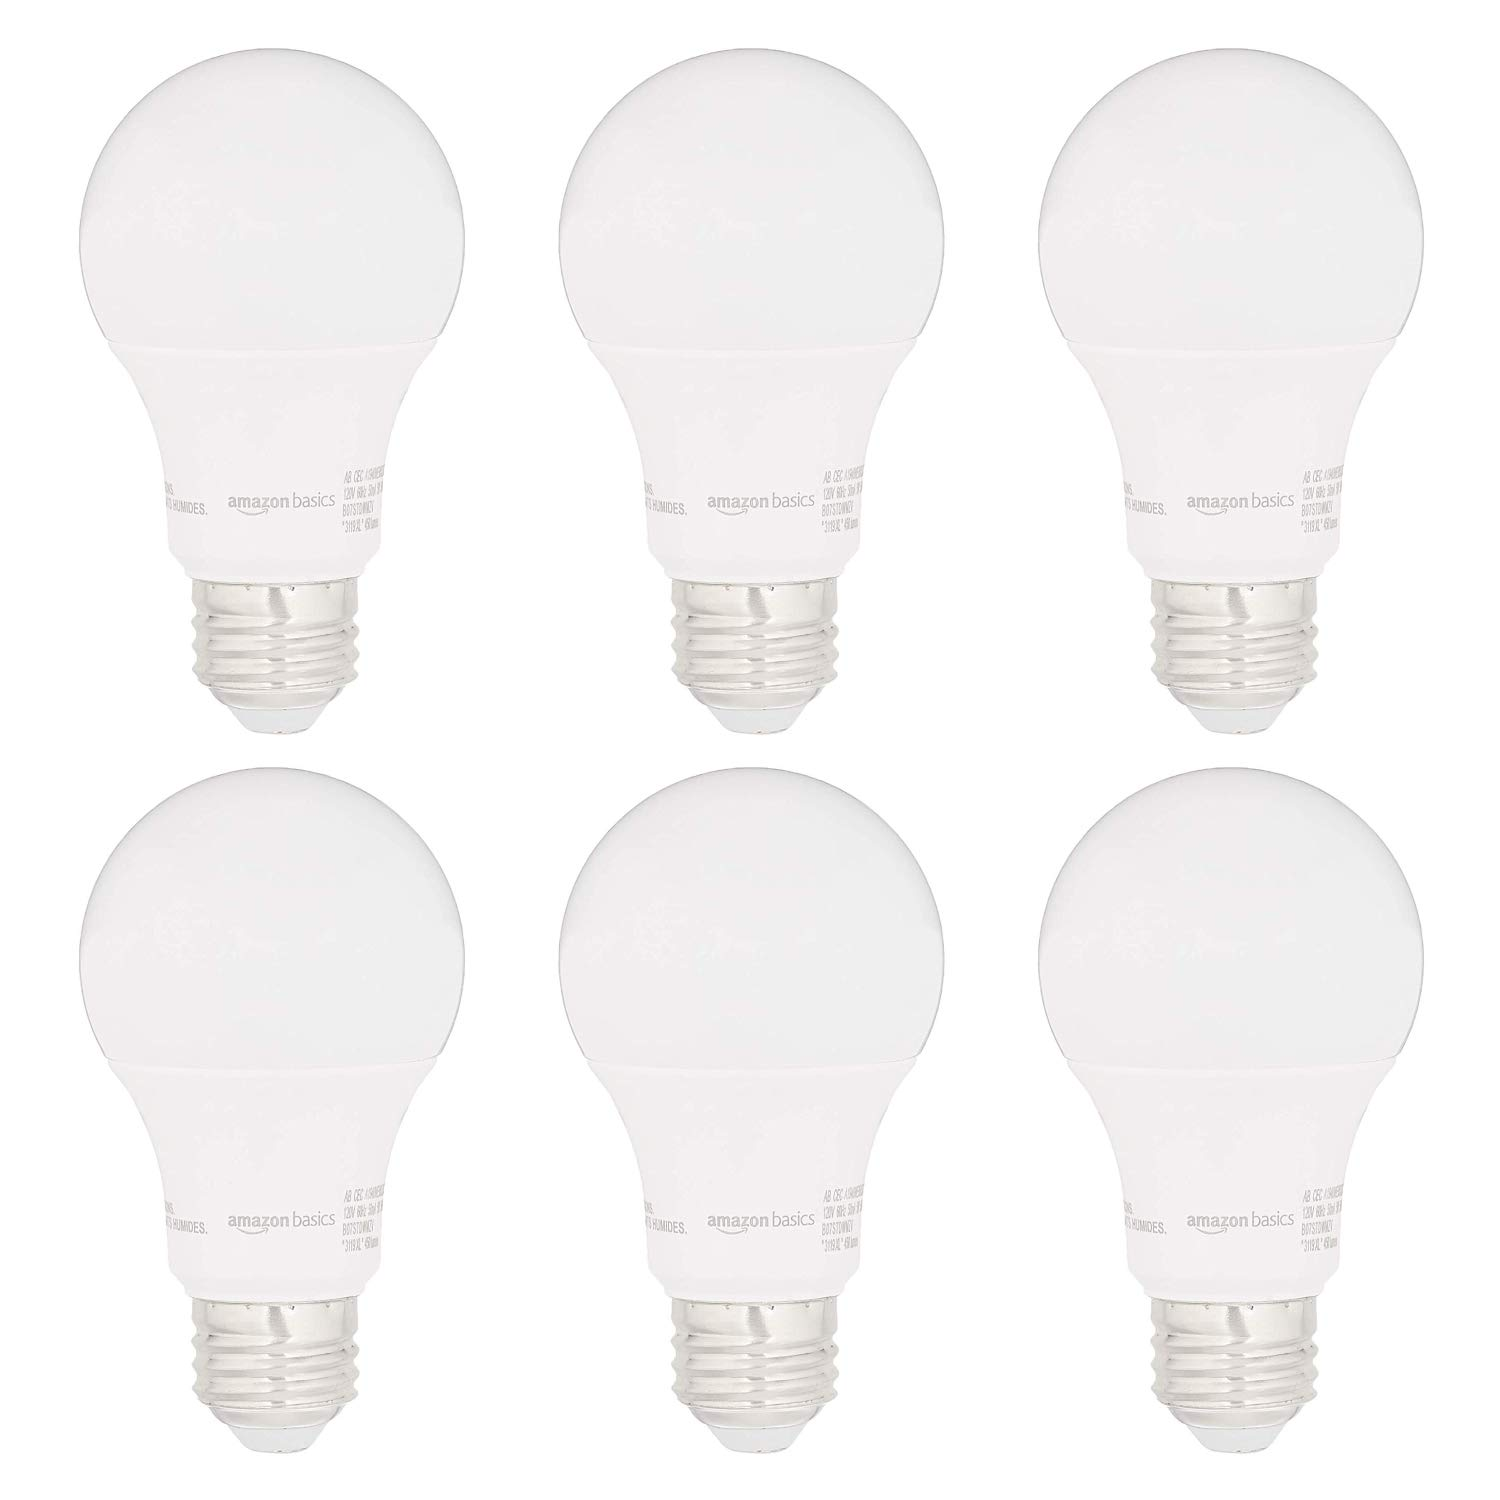 AmazonBasics 40W Equivalent, Daylight, Dimmable, 15,000 Hour Lifetime, CEC Compliant, A19 LED Light Bulbs | 6-Pack